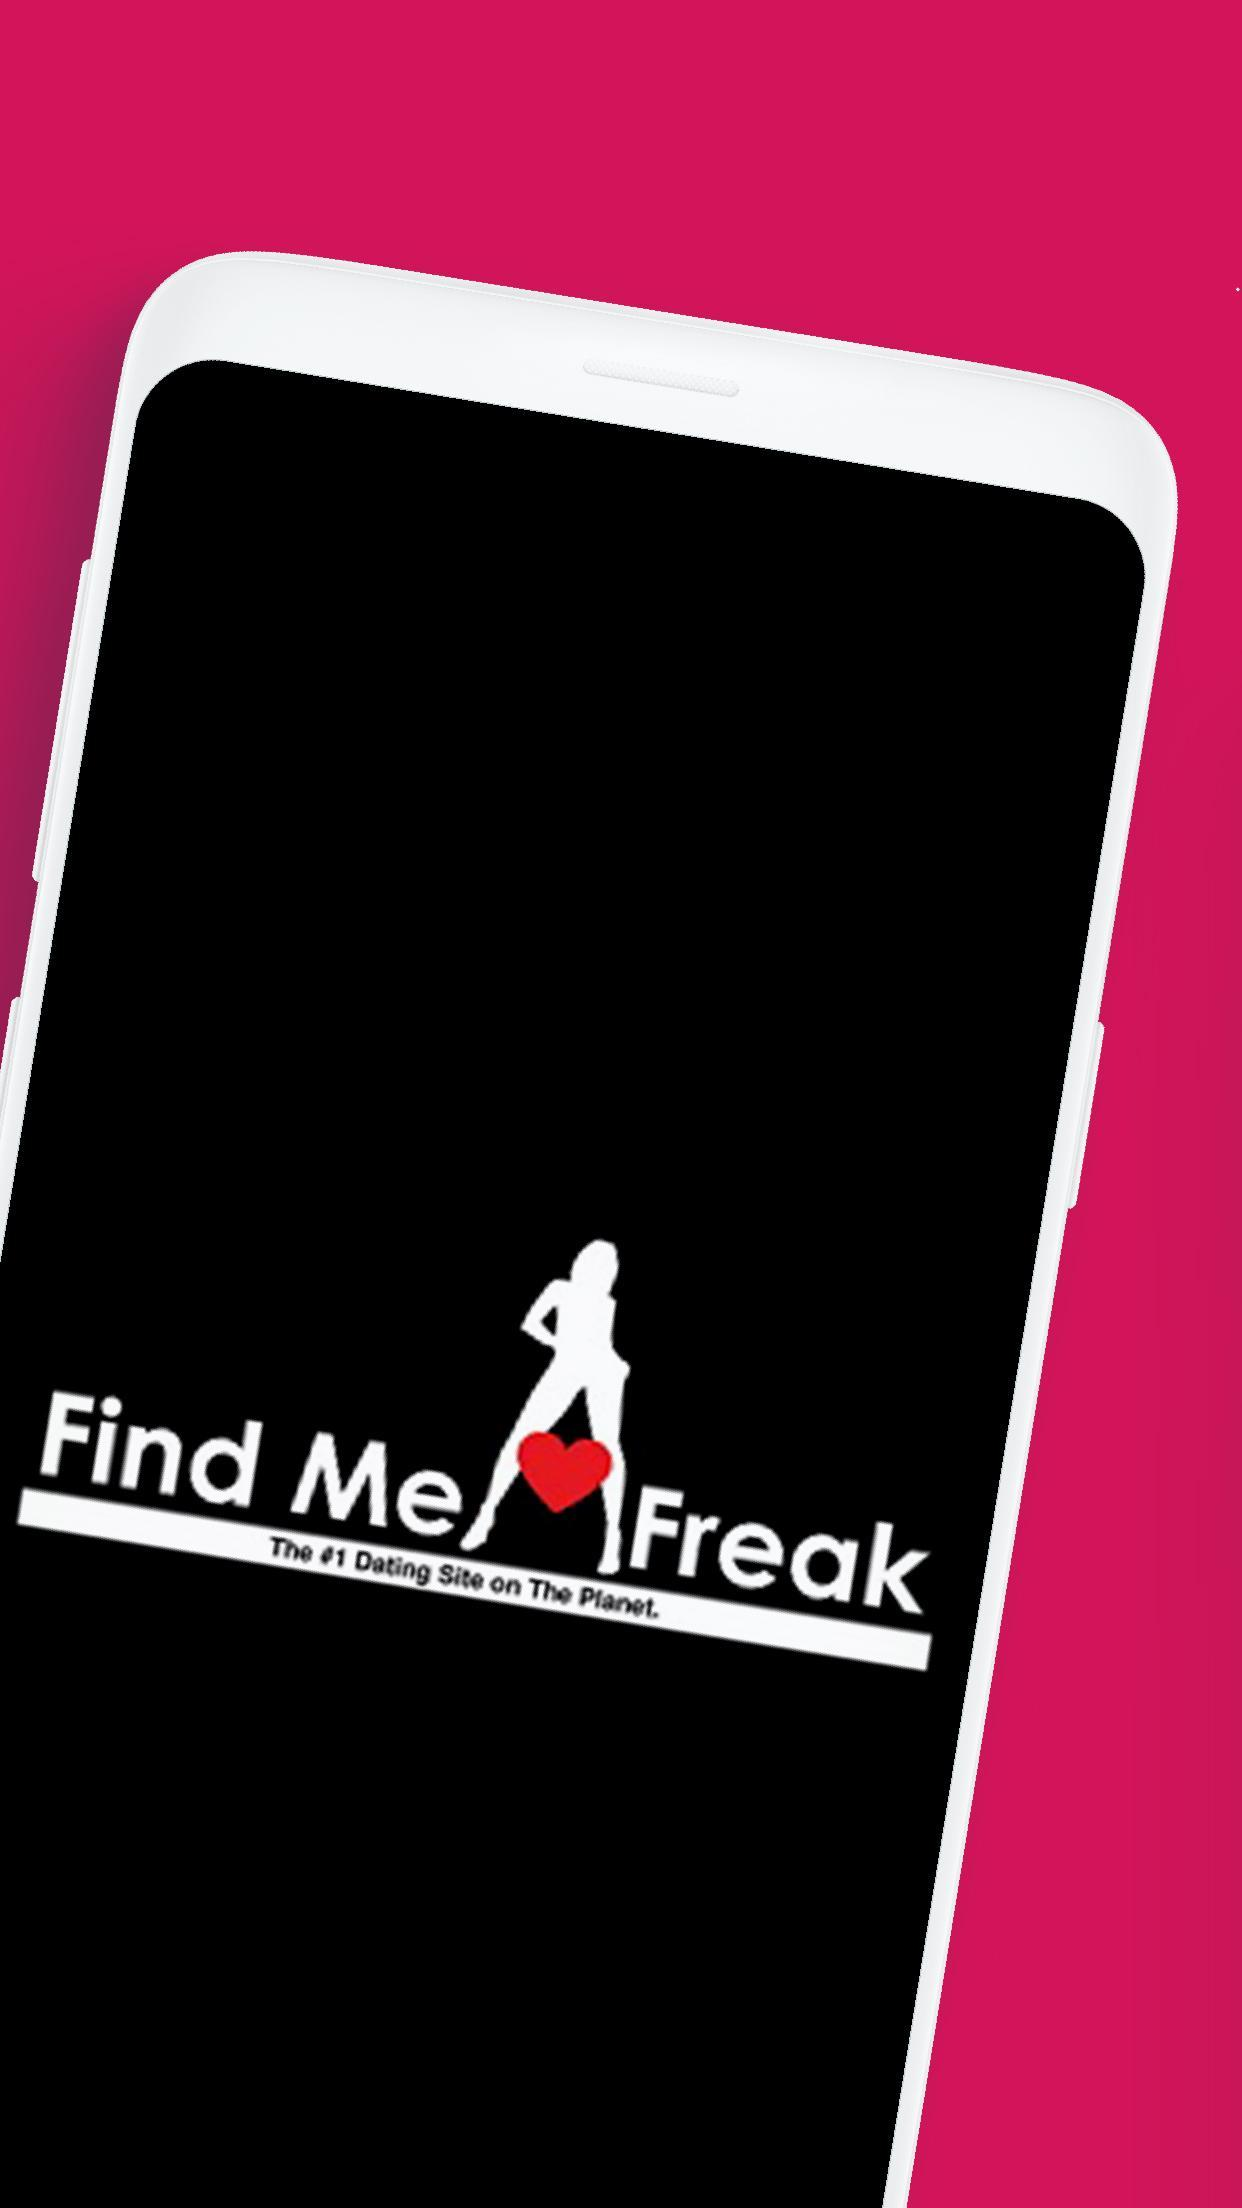 Find me a freak app